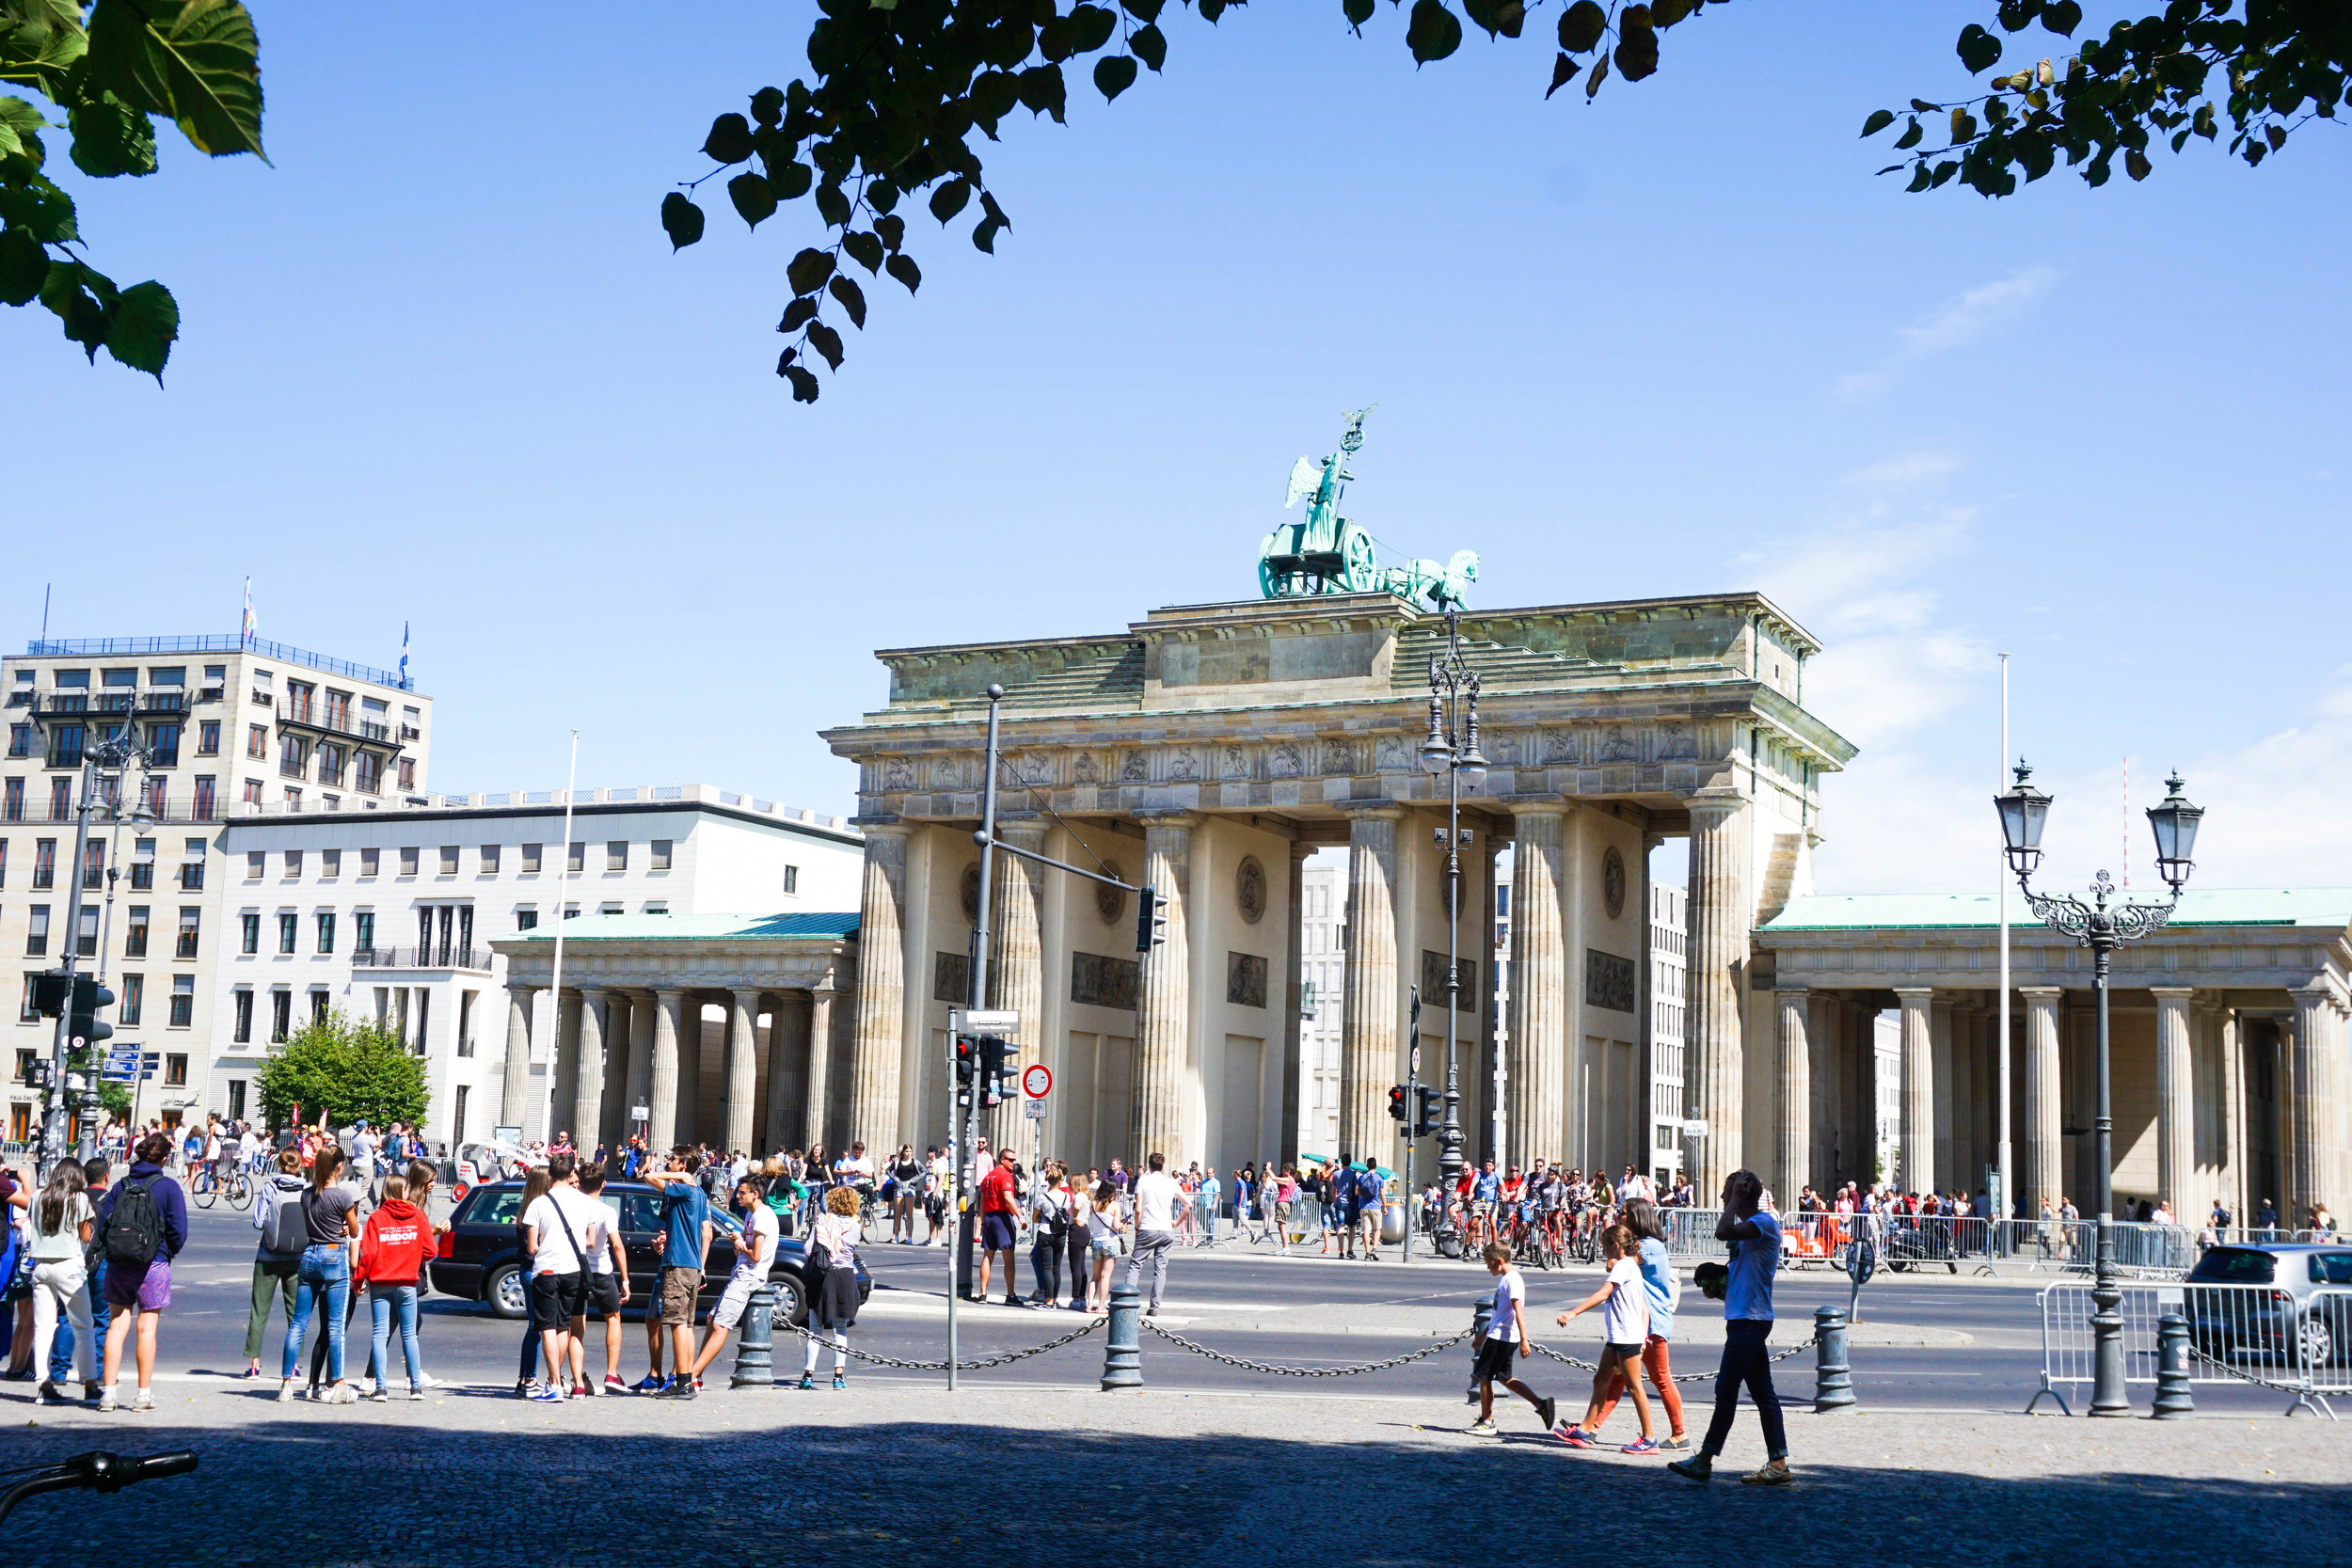 Bradenburg Gate is always a hot spot for hoards of tourists and protestors